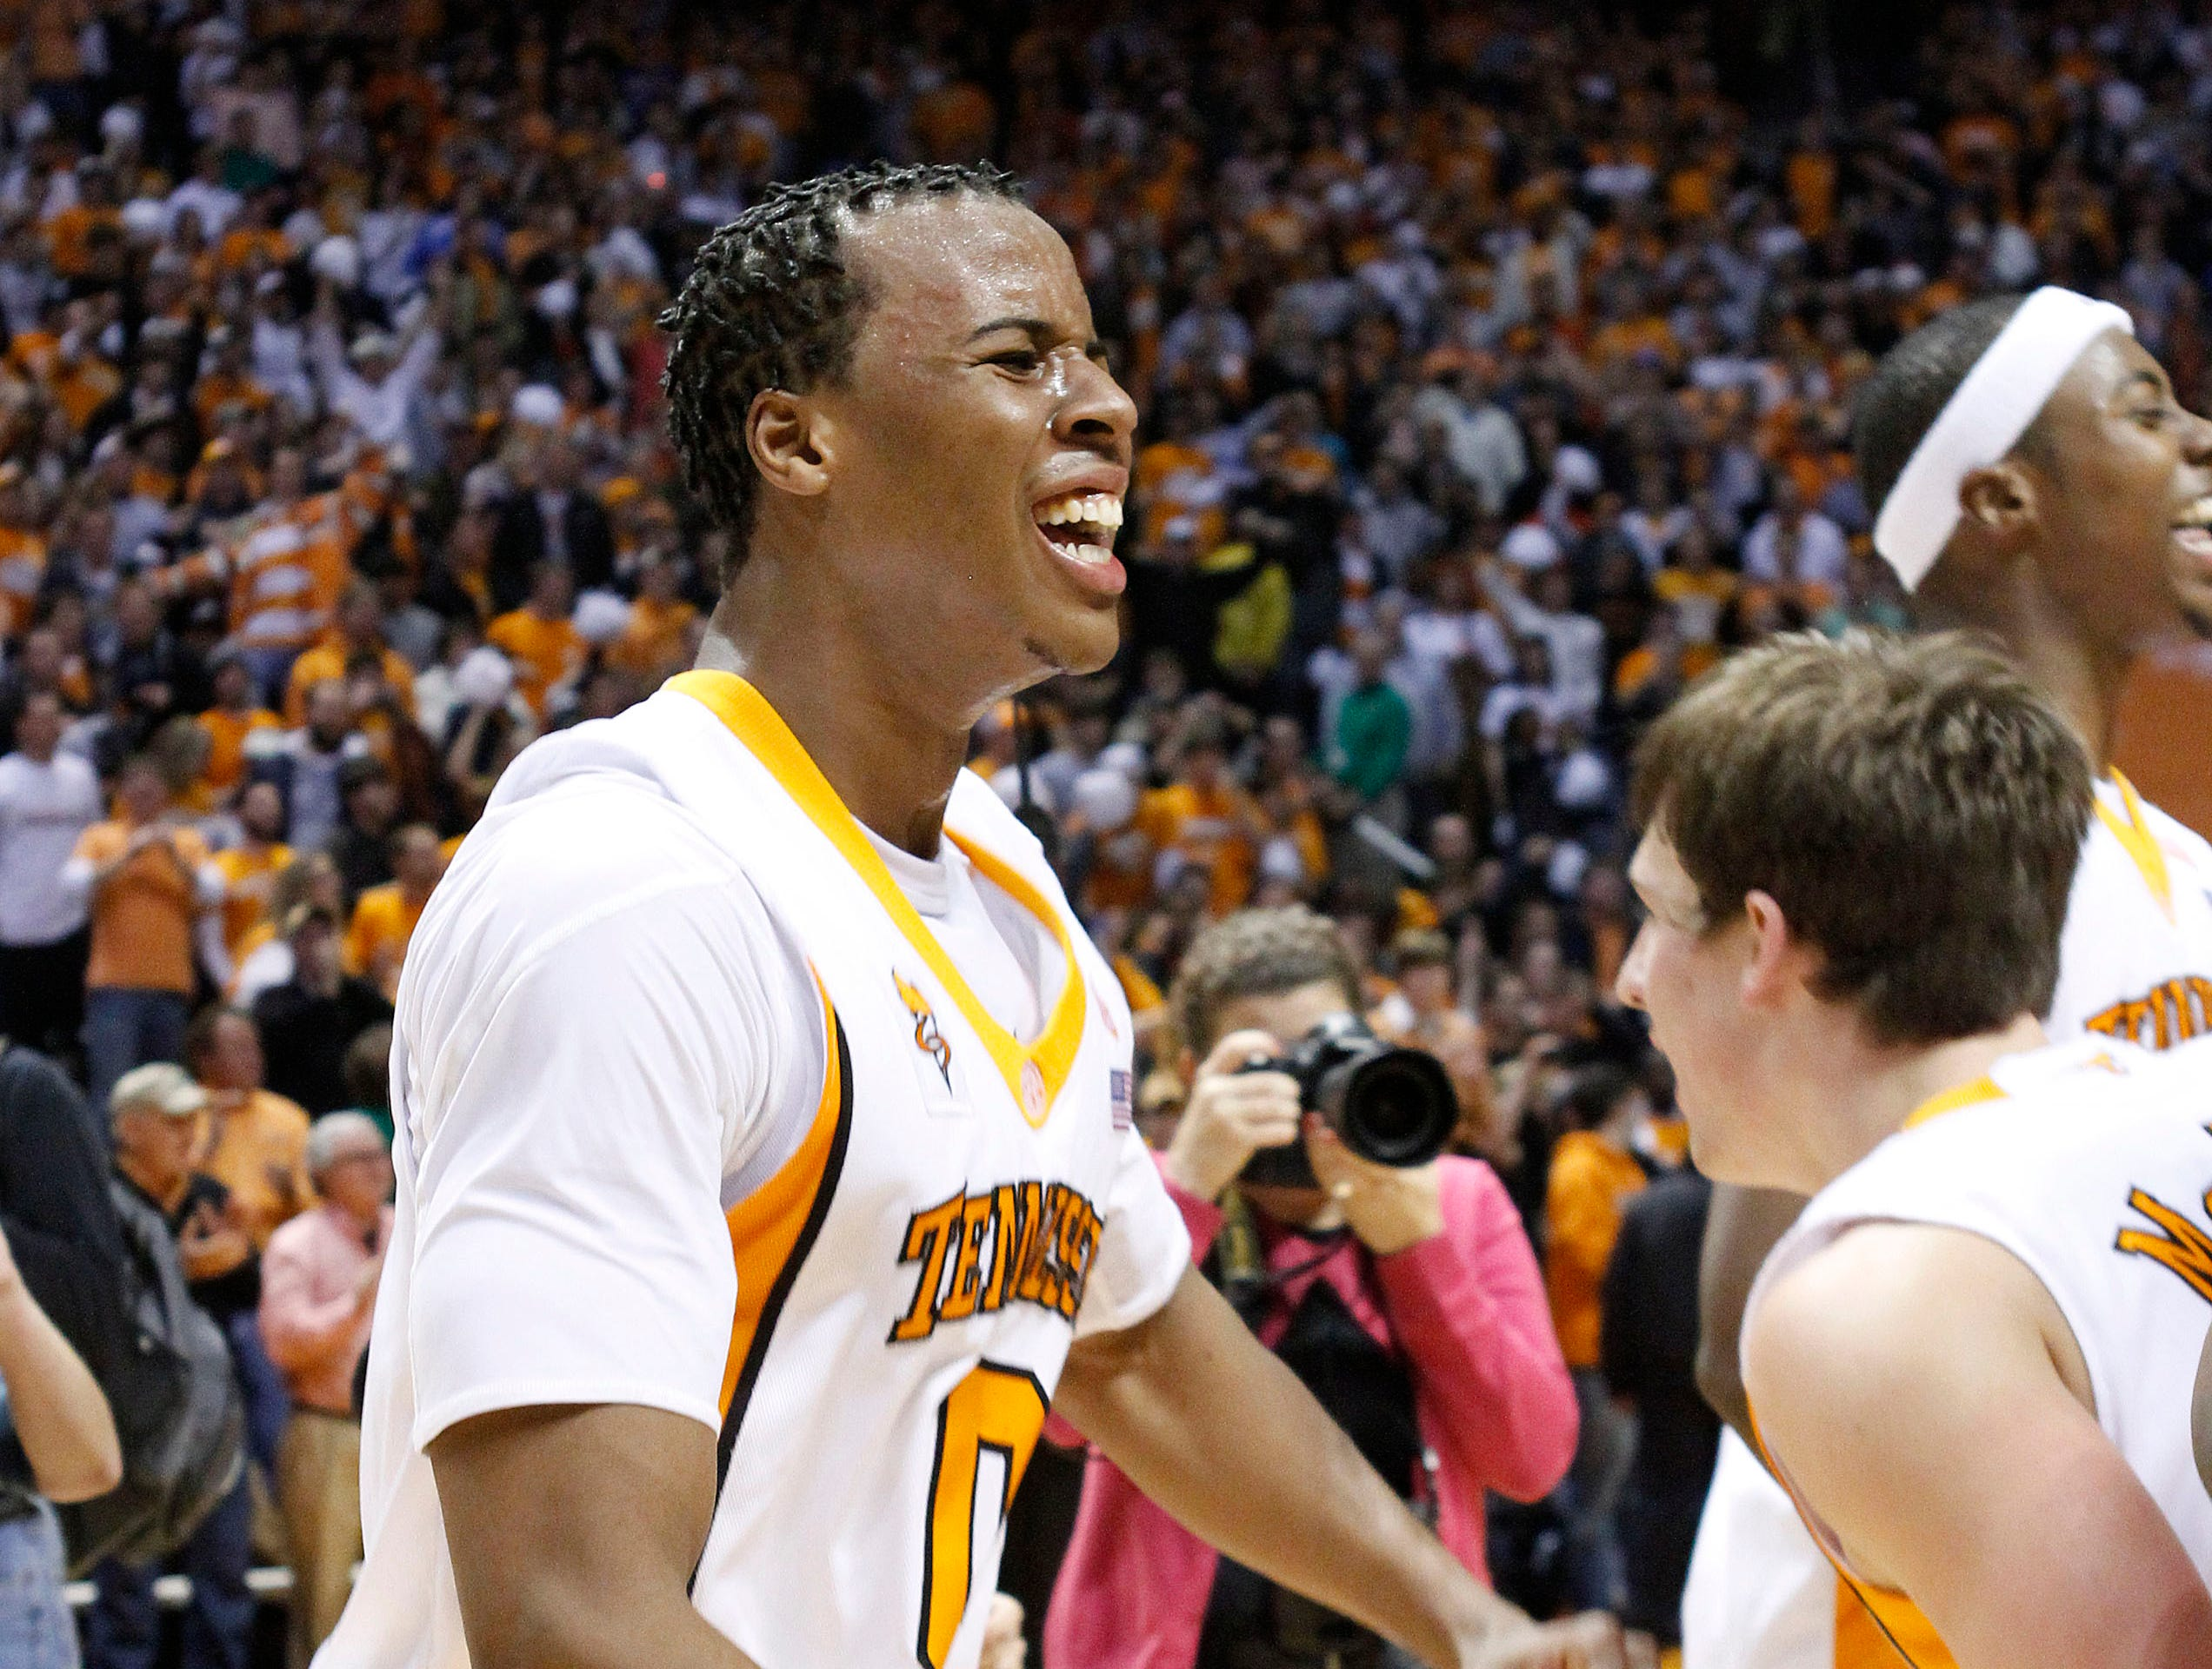 Tennessee's Renaldo Woolridge (0) and teammates celebrate after Tennessee's 76-68 win over Kansas in an NCAA college basketball game Sunday, Jan. 10, 2010, in Knoxville, Tenn.